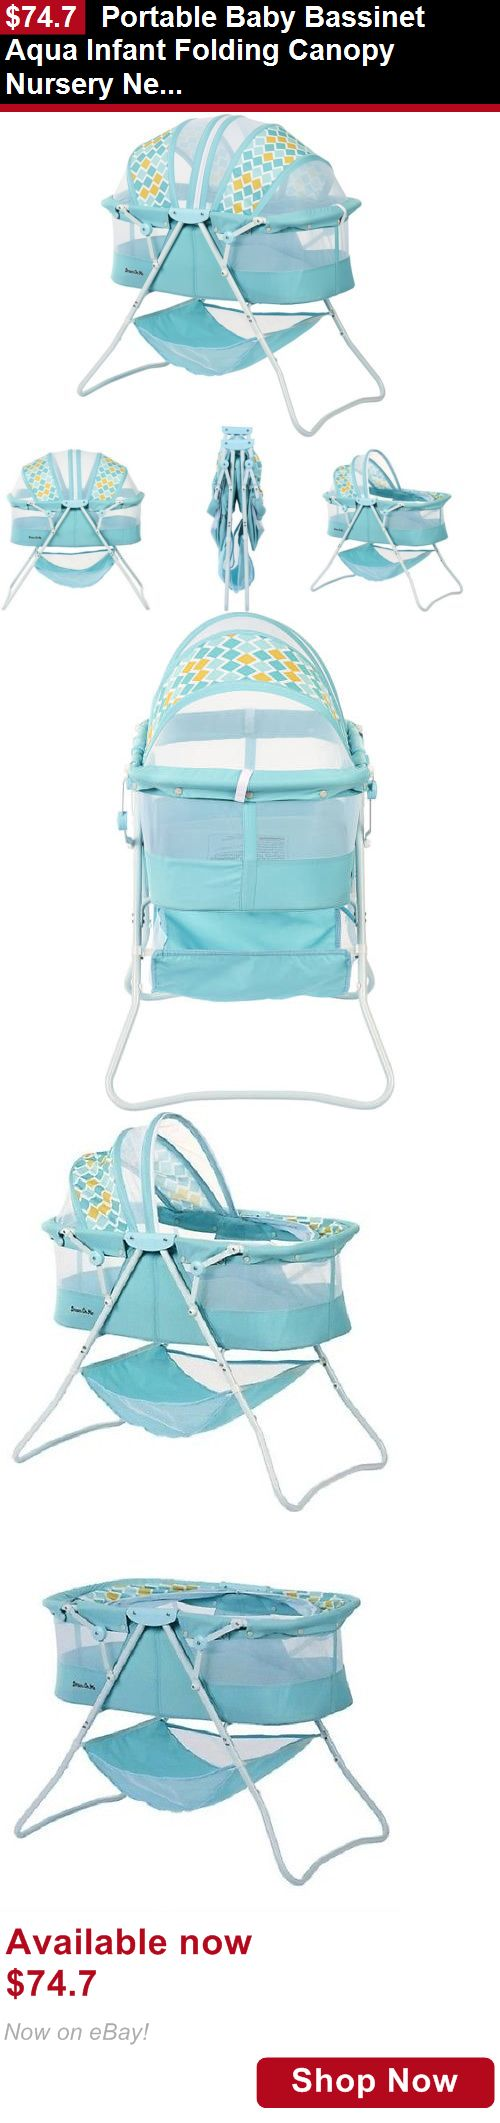 Pin On Need A Bassinet Or Cradle 2015